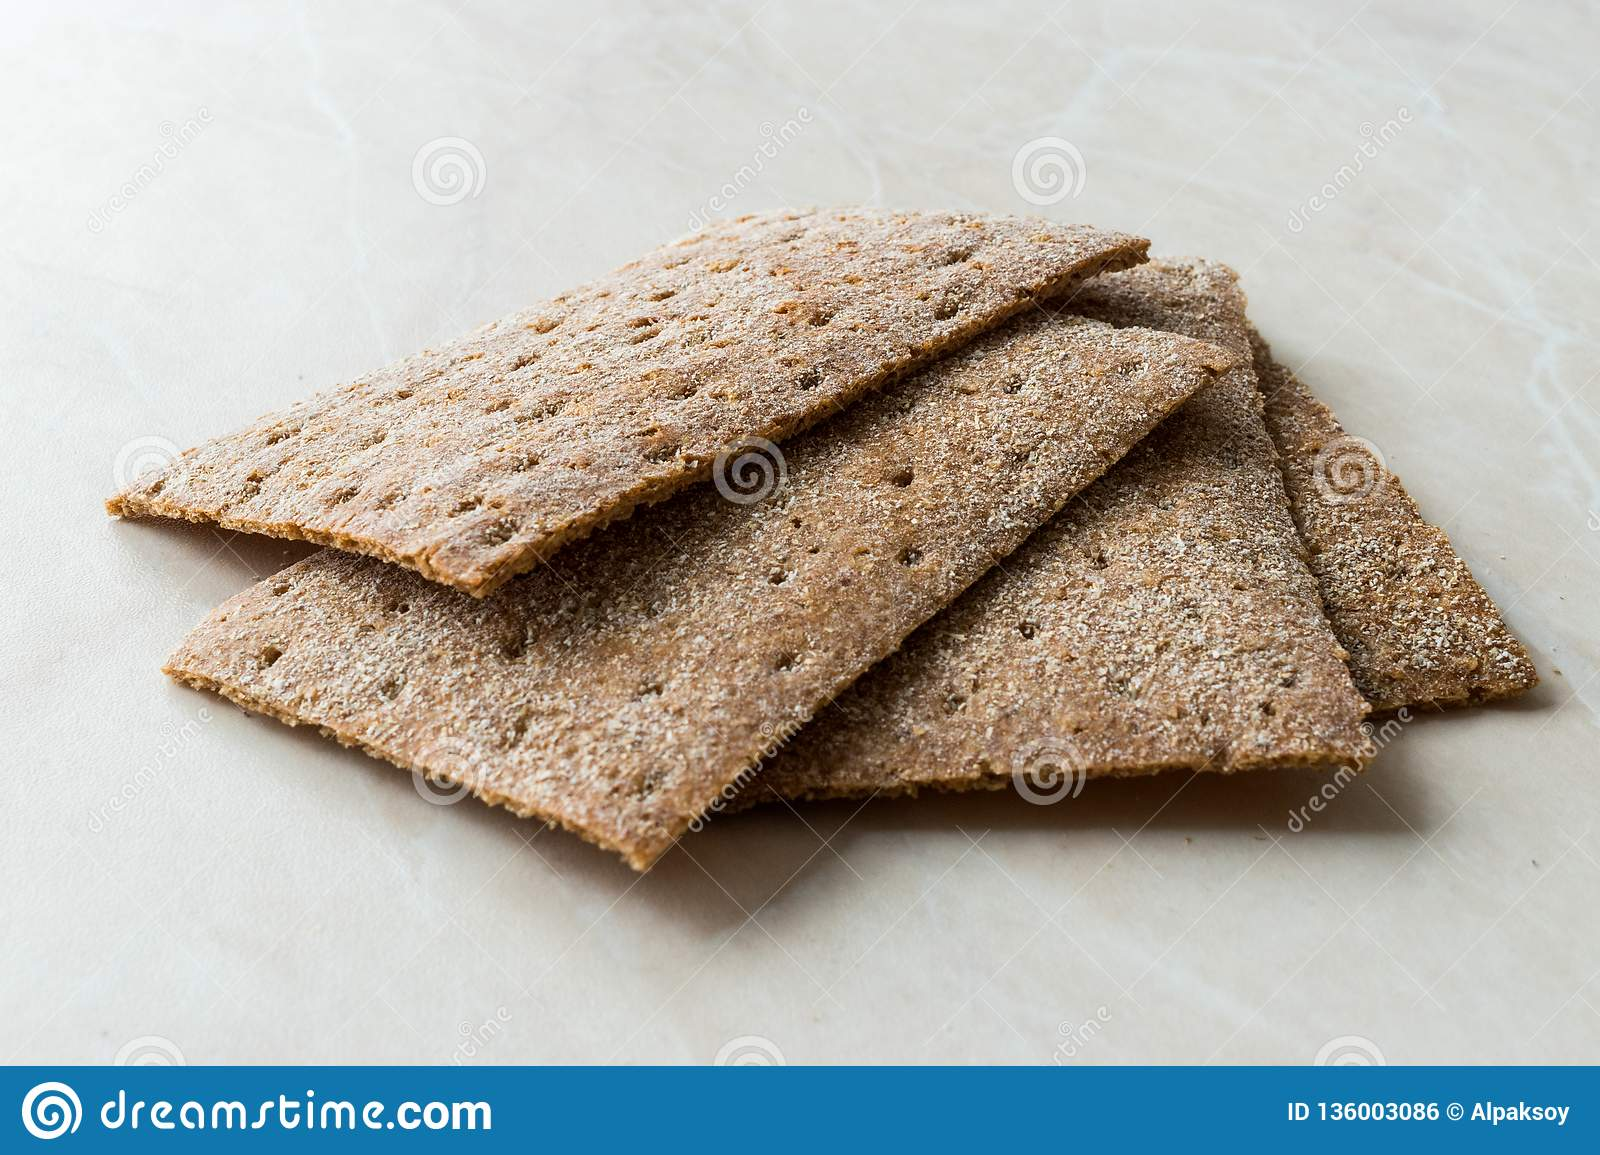 Rye Crispbread made with Sourdough / Cereal Crunchy Multigrain Cereal Flax seeds Protein Bread